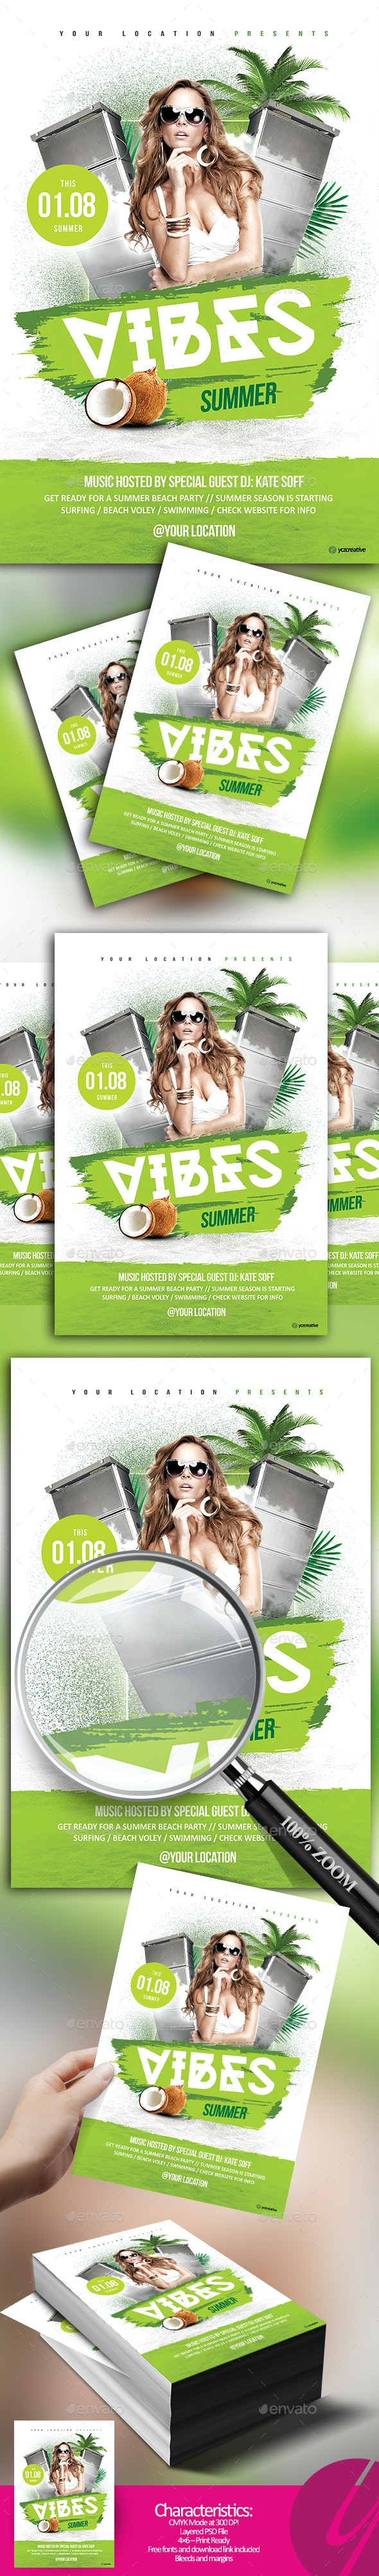 Summer Vibes Flyer - Clubs & Parties Events